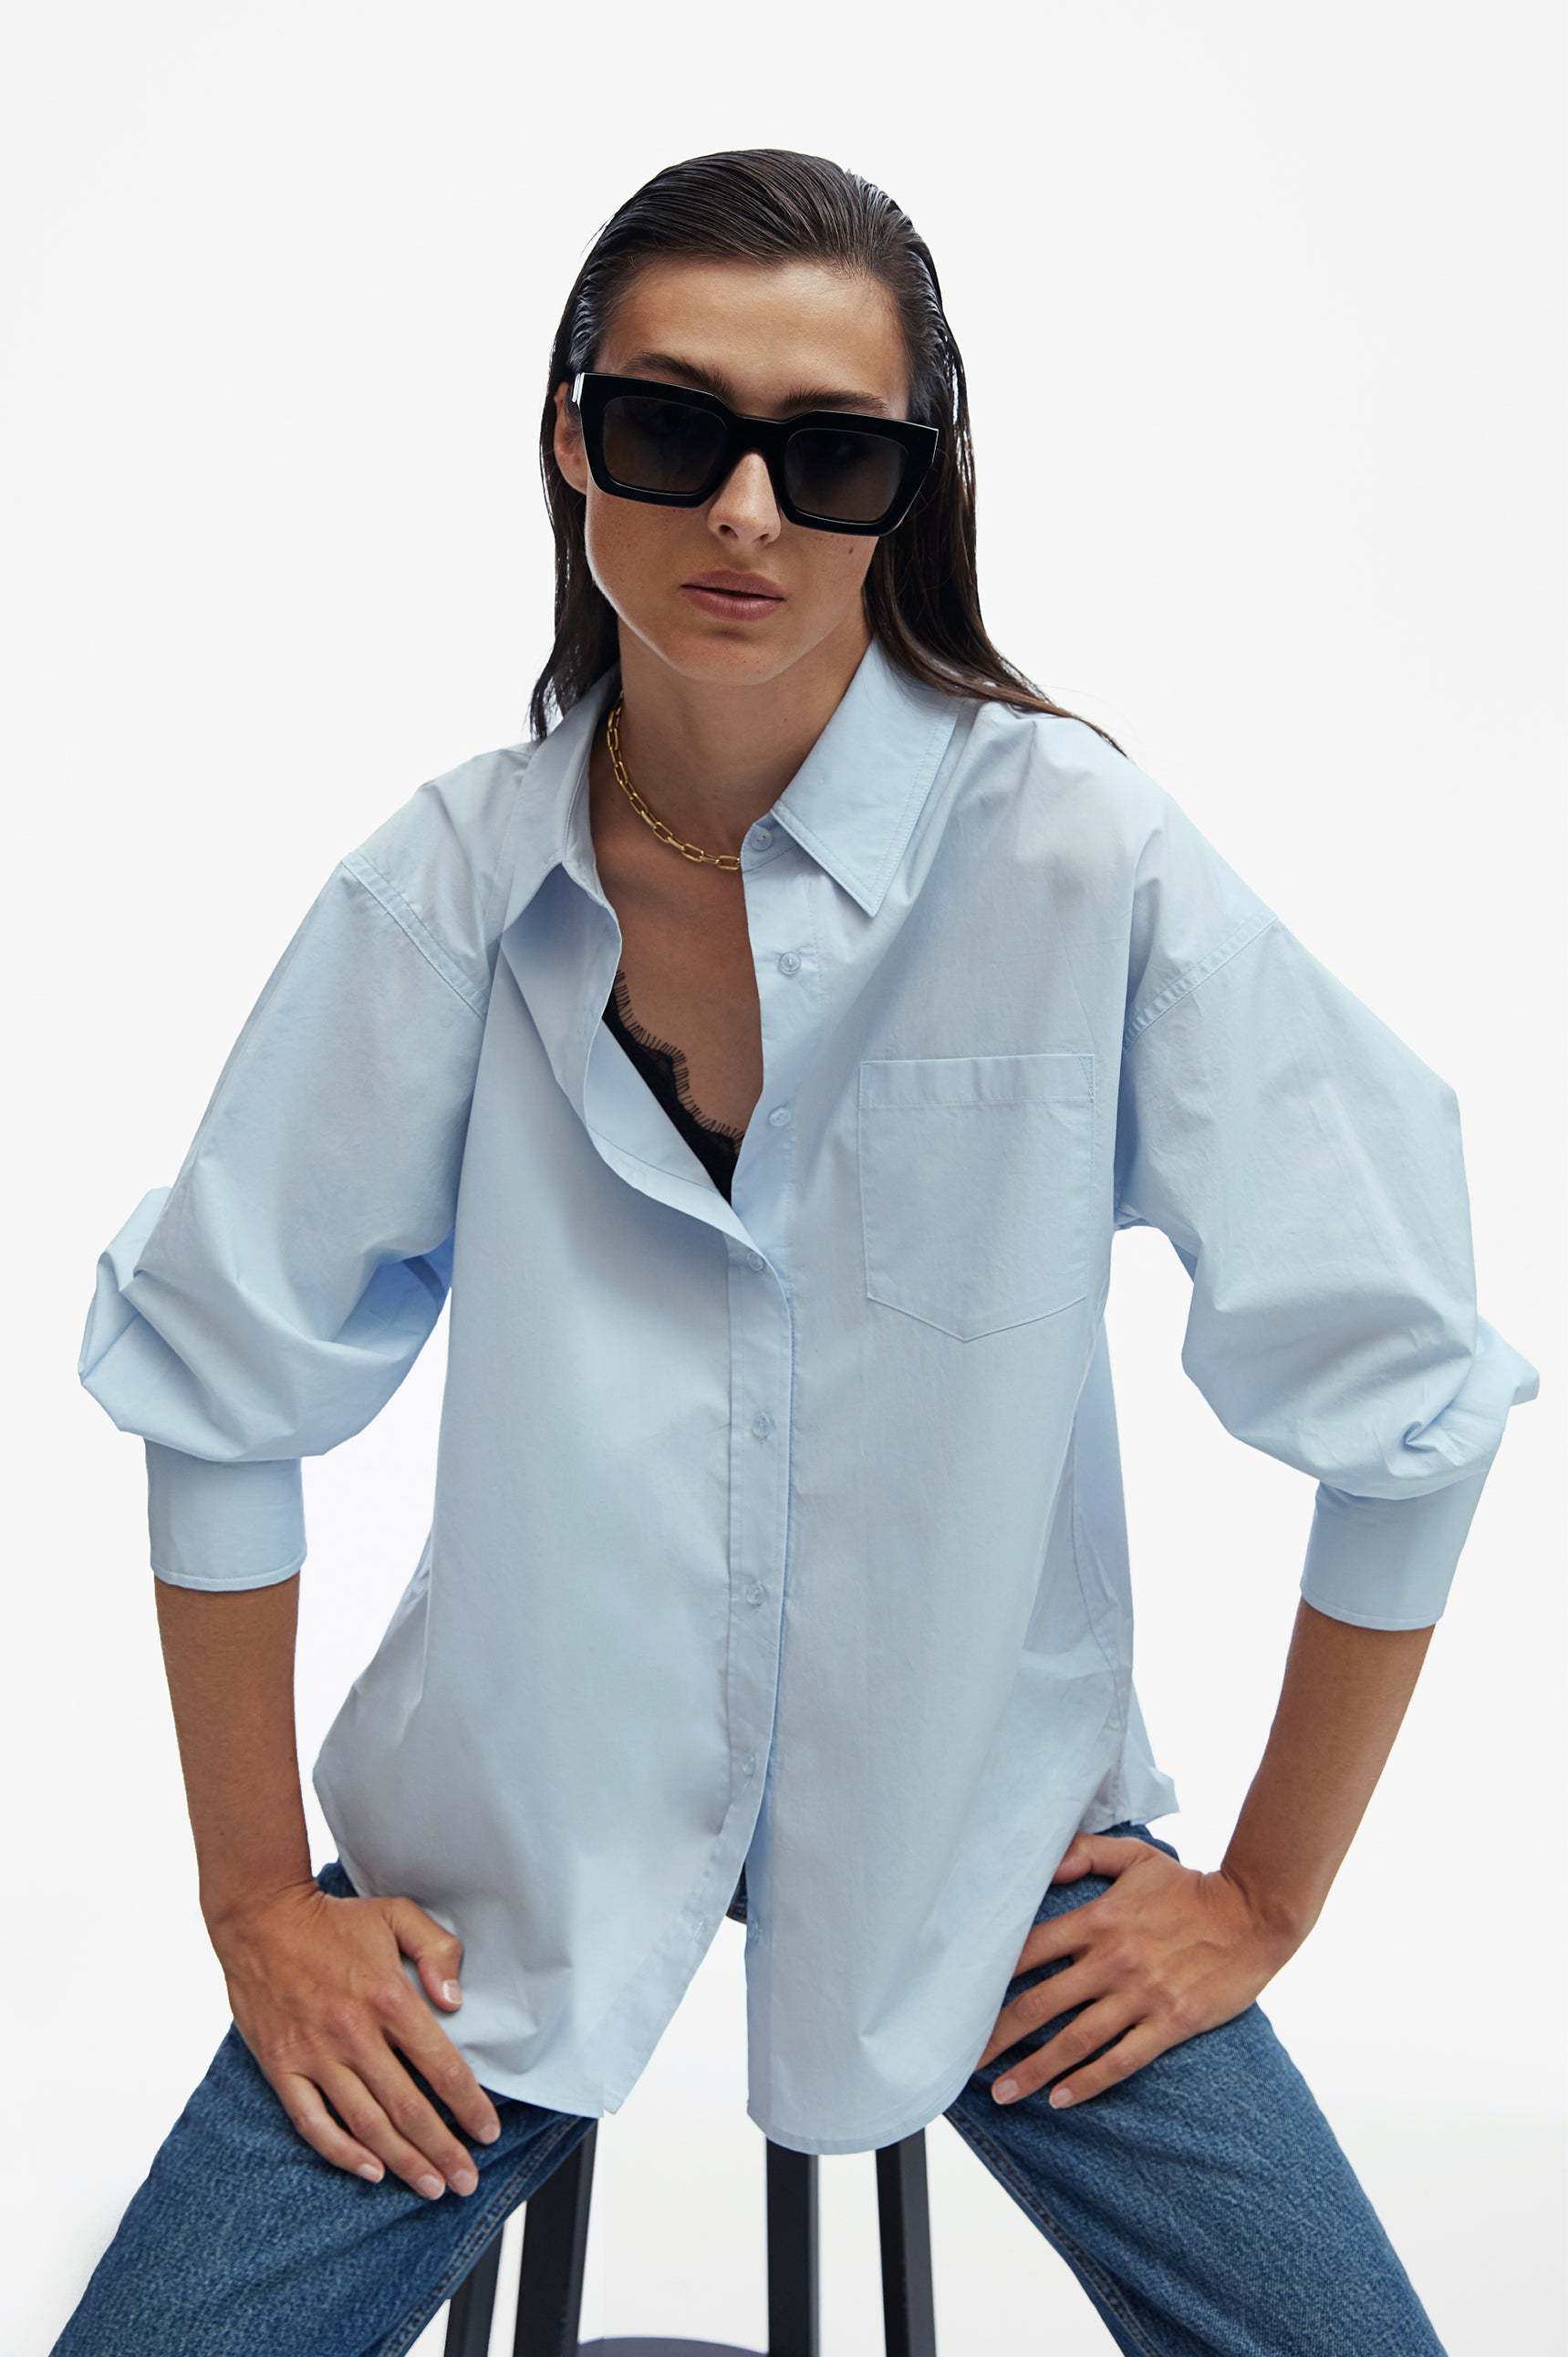 "<p><a href=""/products/mika-shirt-blue"" title=""Mika Shirt - Blue"">MIKA SHIRT IN BLUE</a> +<a href=""https://aninebing.myshopify.com/products/levi-sunglasses-navy"" title=""Levi Sunglasses - Navy""> </a><a href=""/products/levi-sunglasses-navy"" title=""Levi Sunglasses - Navy"">LEVI SUNGLASSES IN NAVY</a><a href=""/products/levi-sunglasses-navy"" title=""Levi Sunglasses - Navy""> </a></p>"